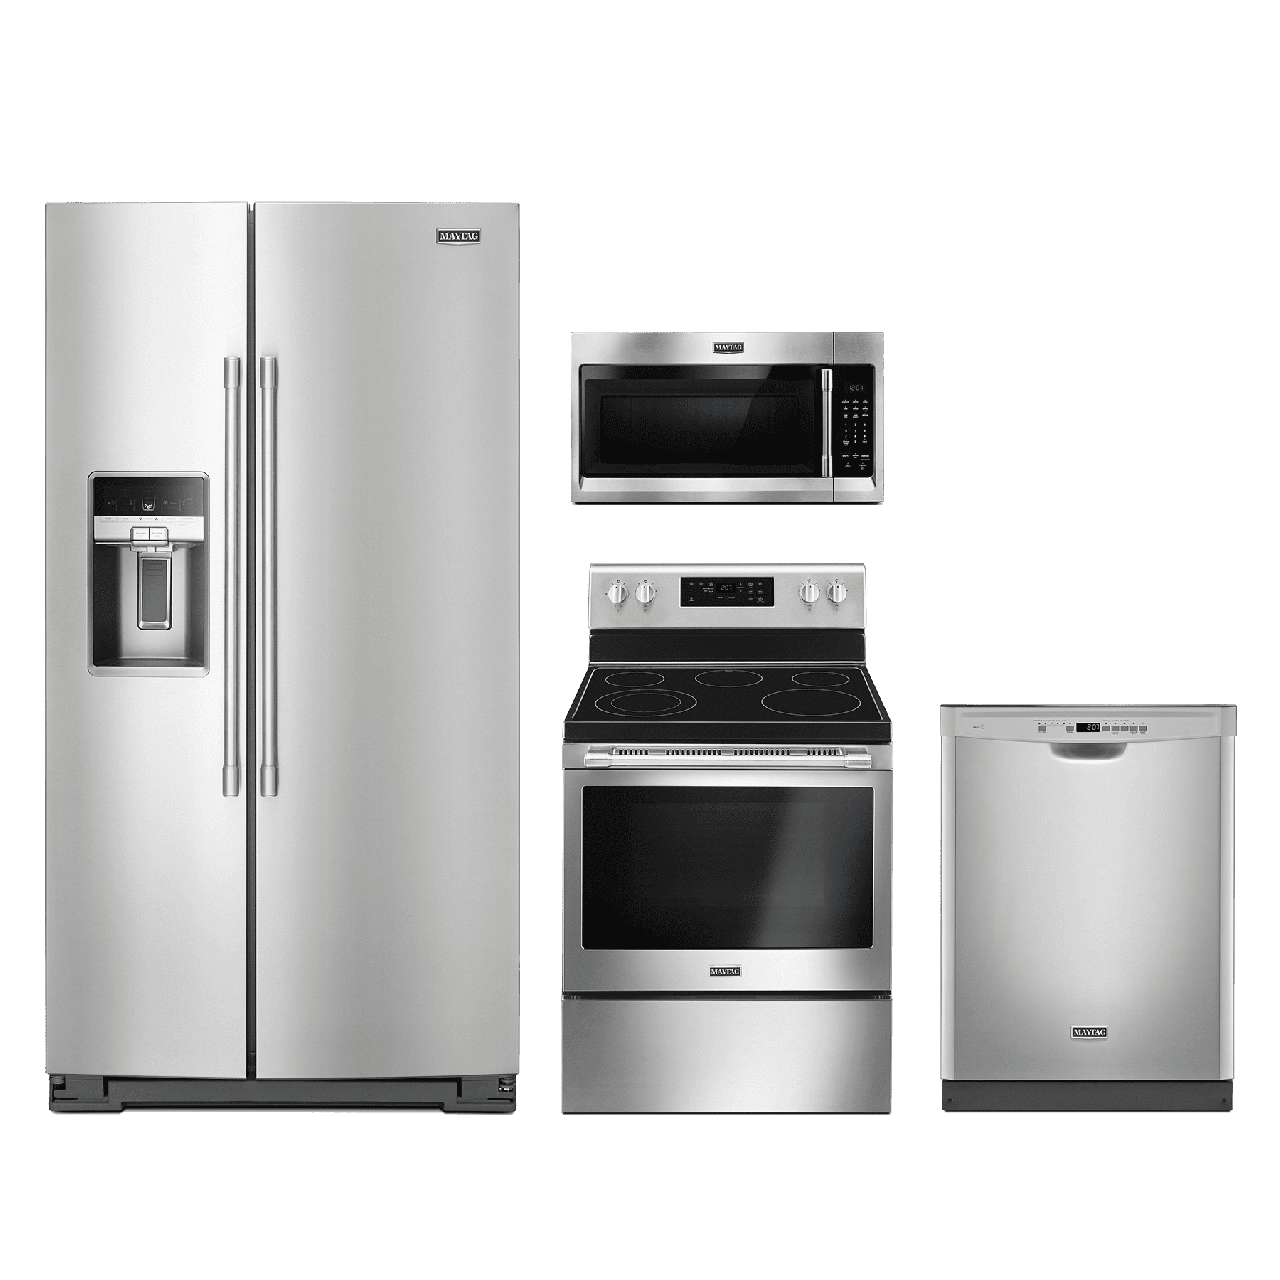 Maytag 4 Piece Kitchen Package Fingerprint Resistant Stainless Steel Makitmer6600fz